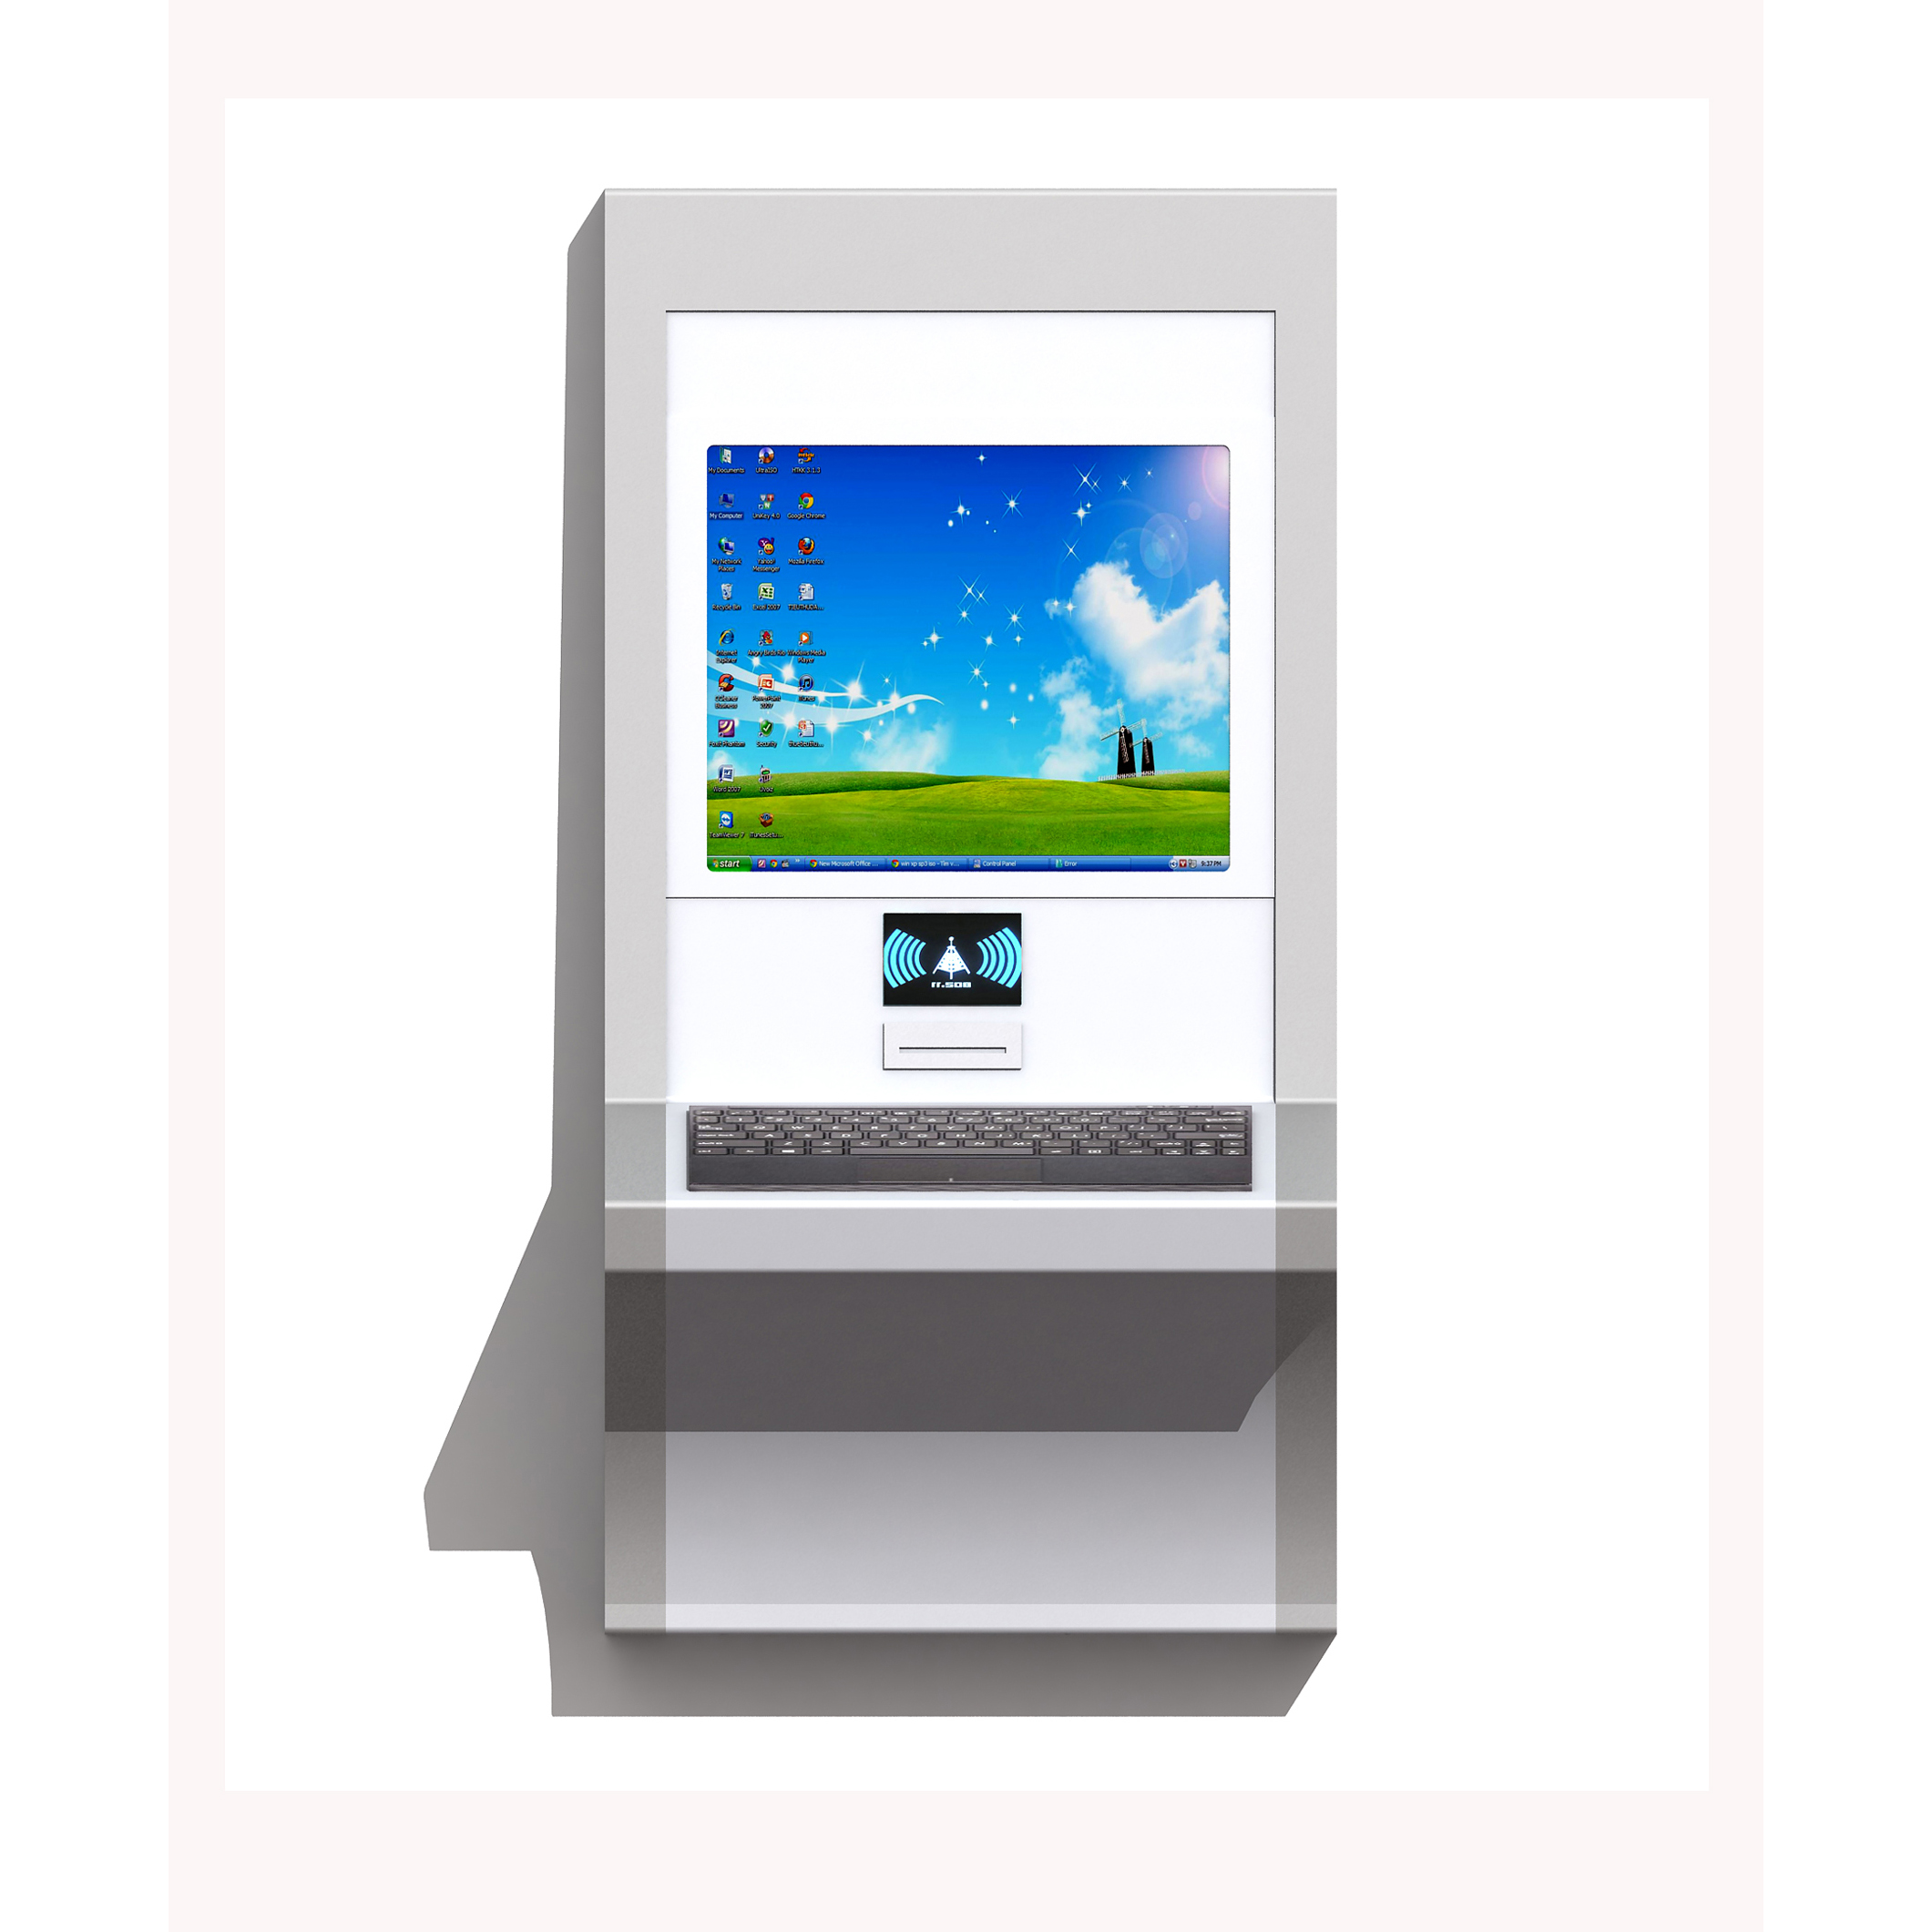 Kiosk-tra-cuu-thong-tin-AT-K17M10